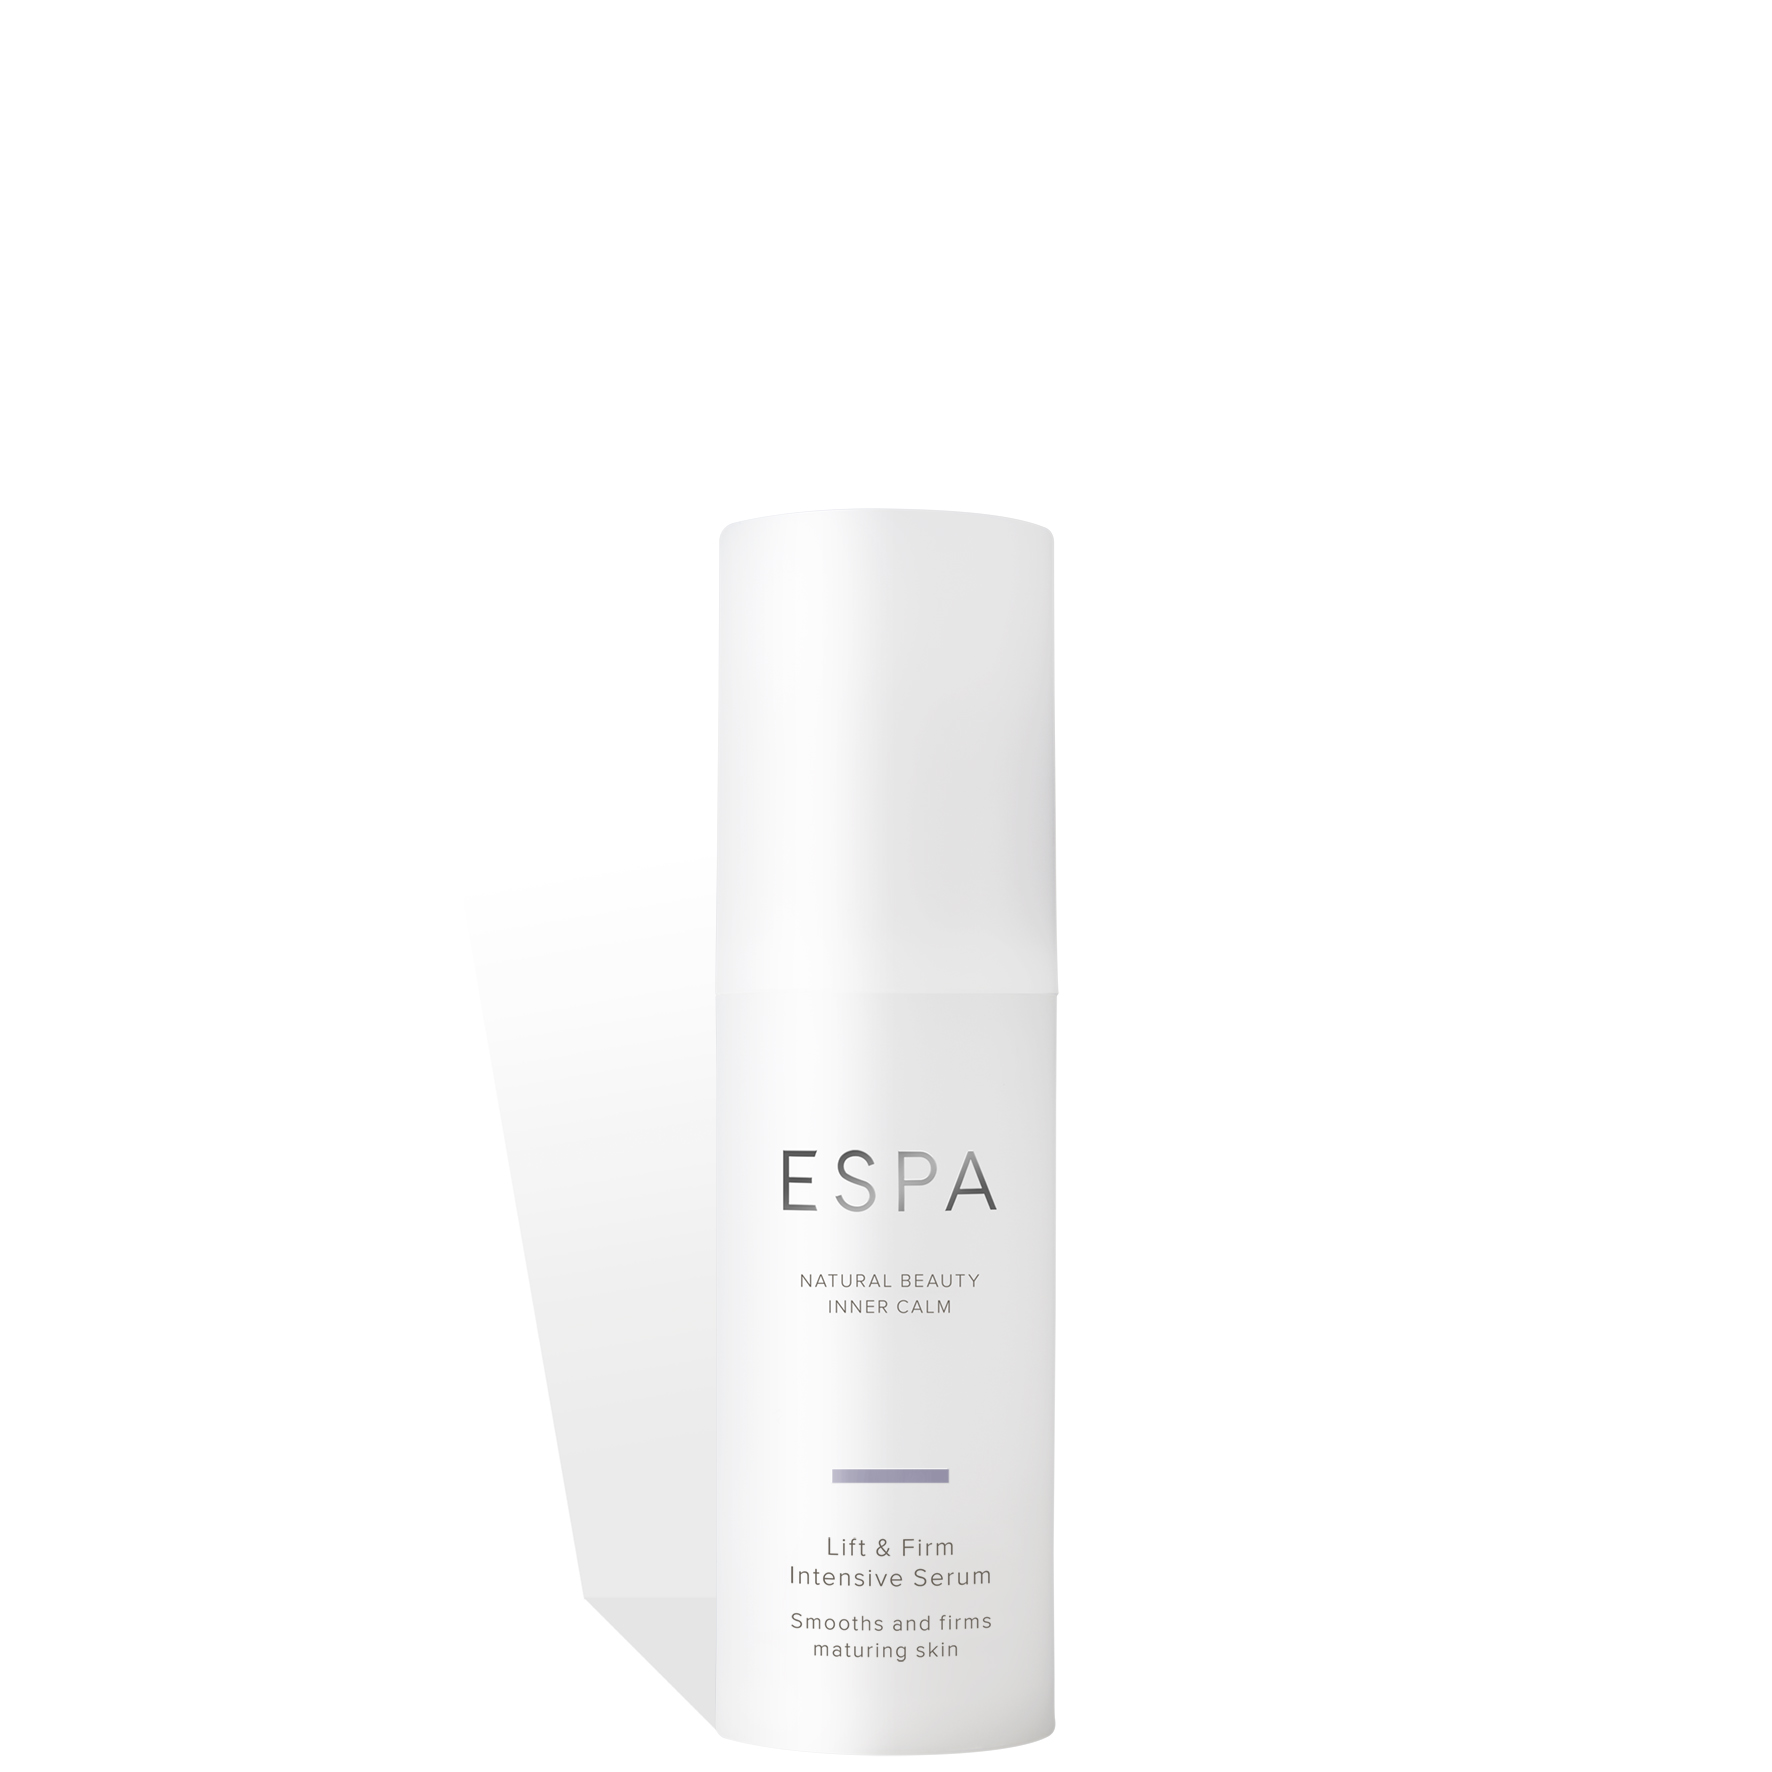 ESPA Lift and Firm Intensive Serum